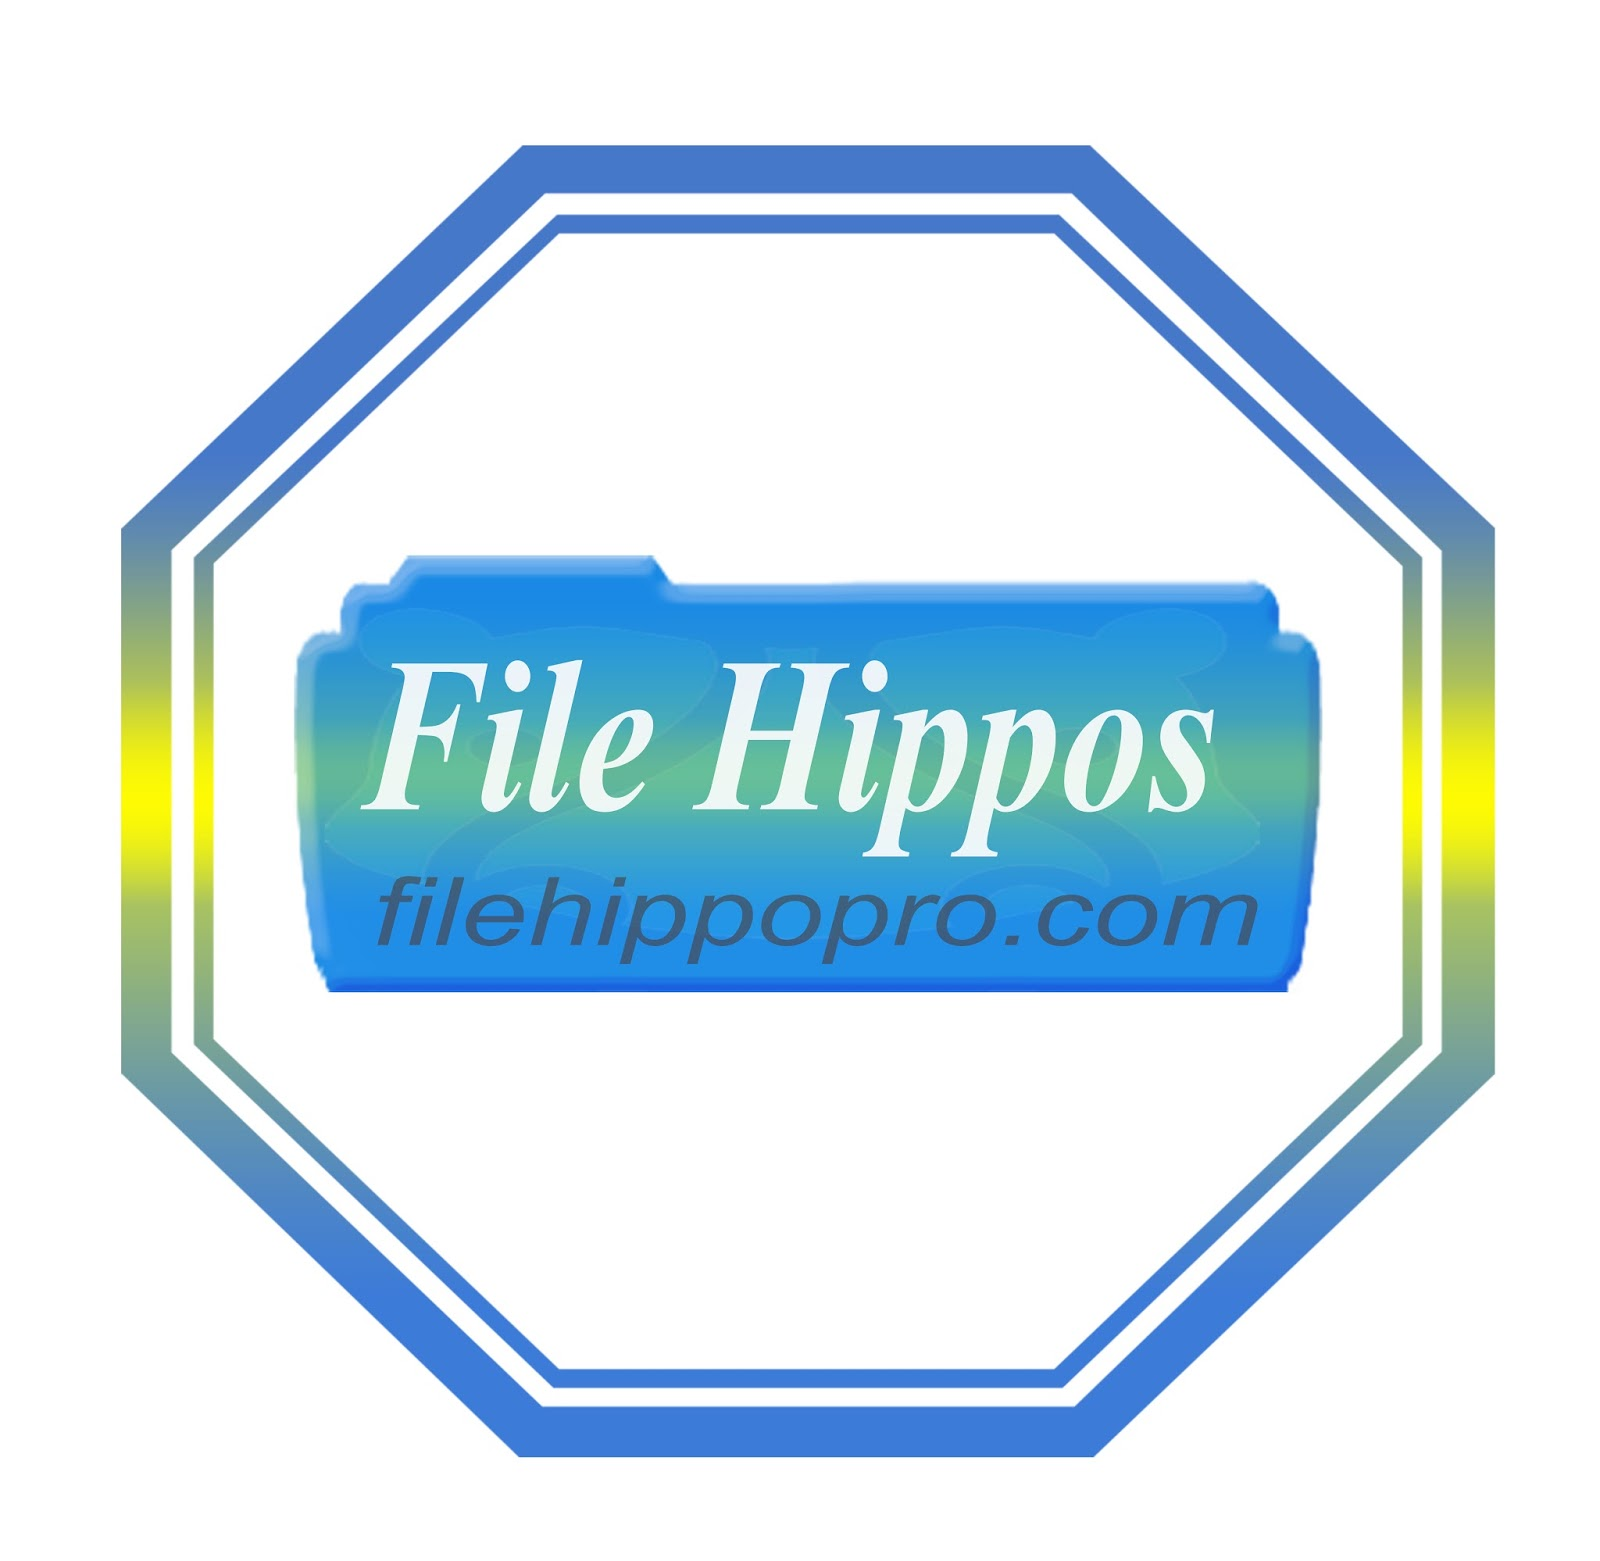 Microsoft Office 2000 Free Download - Free Download - Filehippopro ...